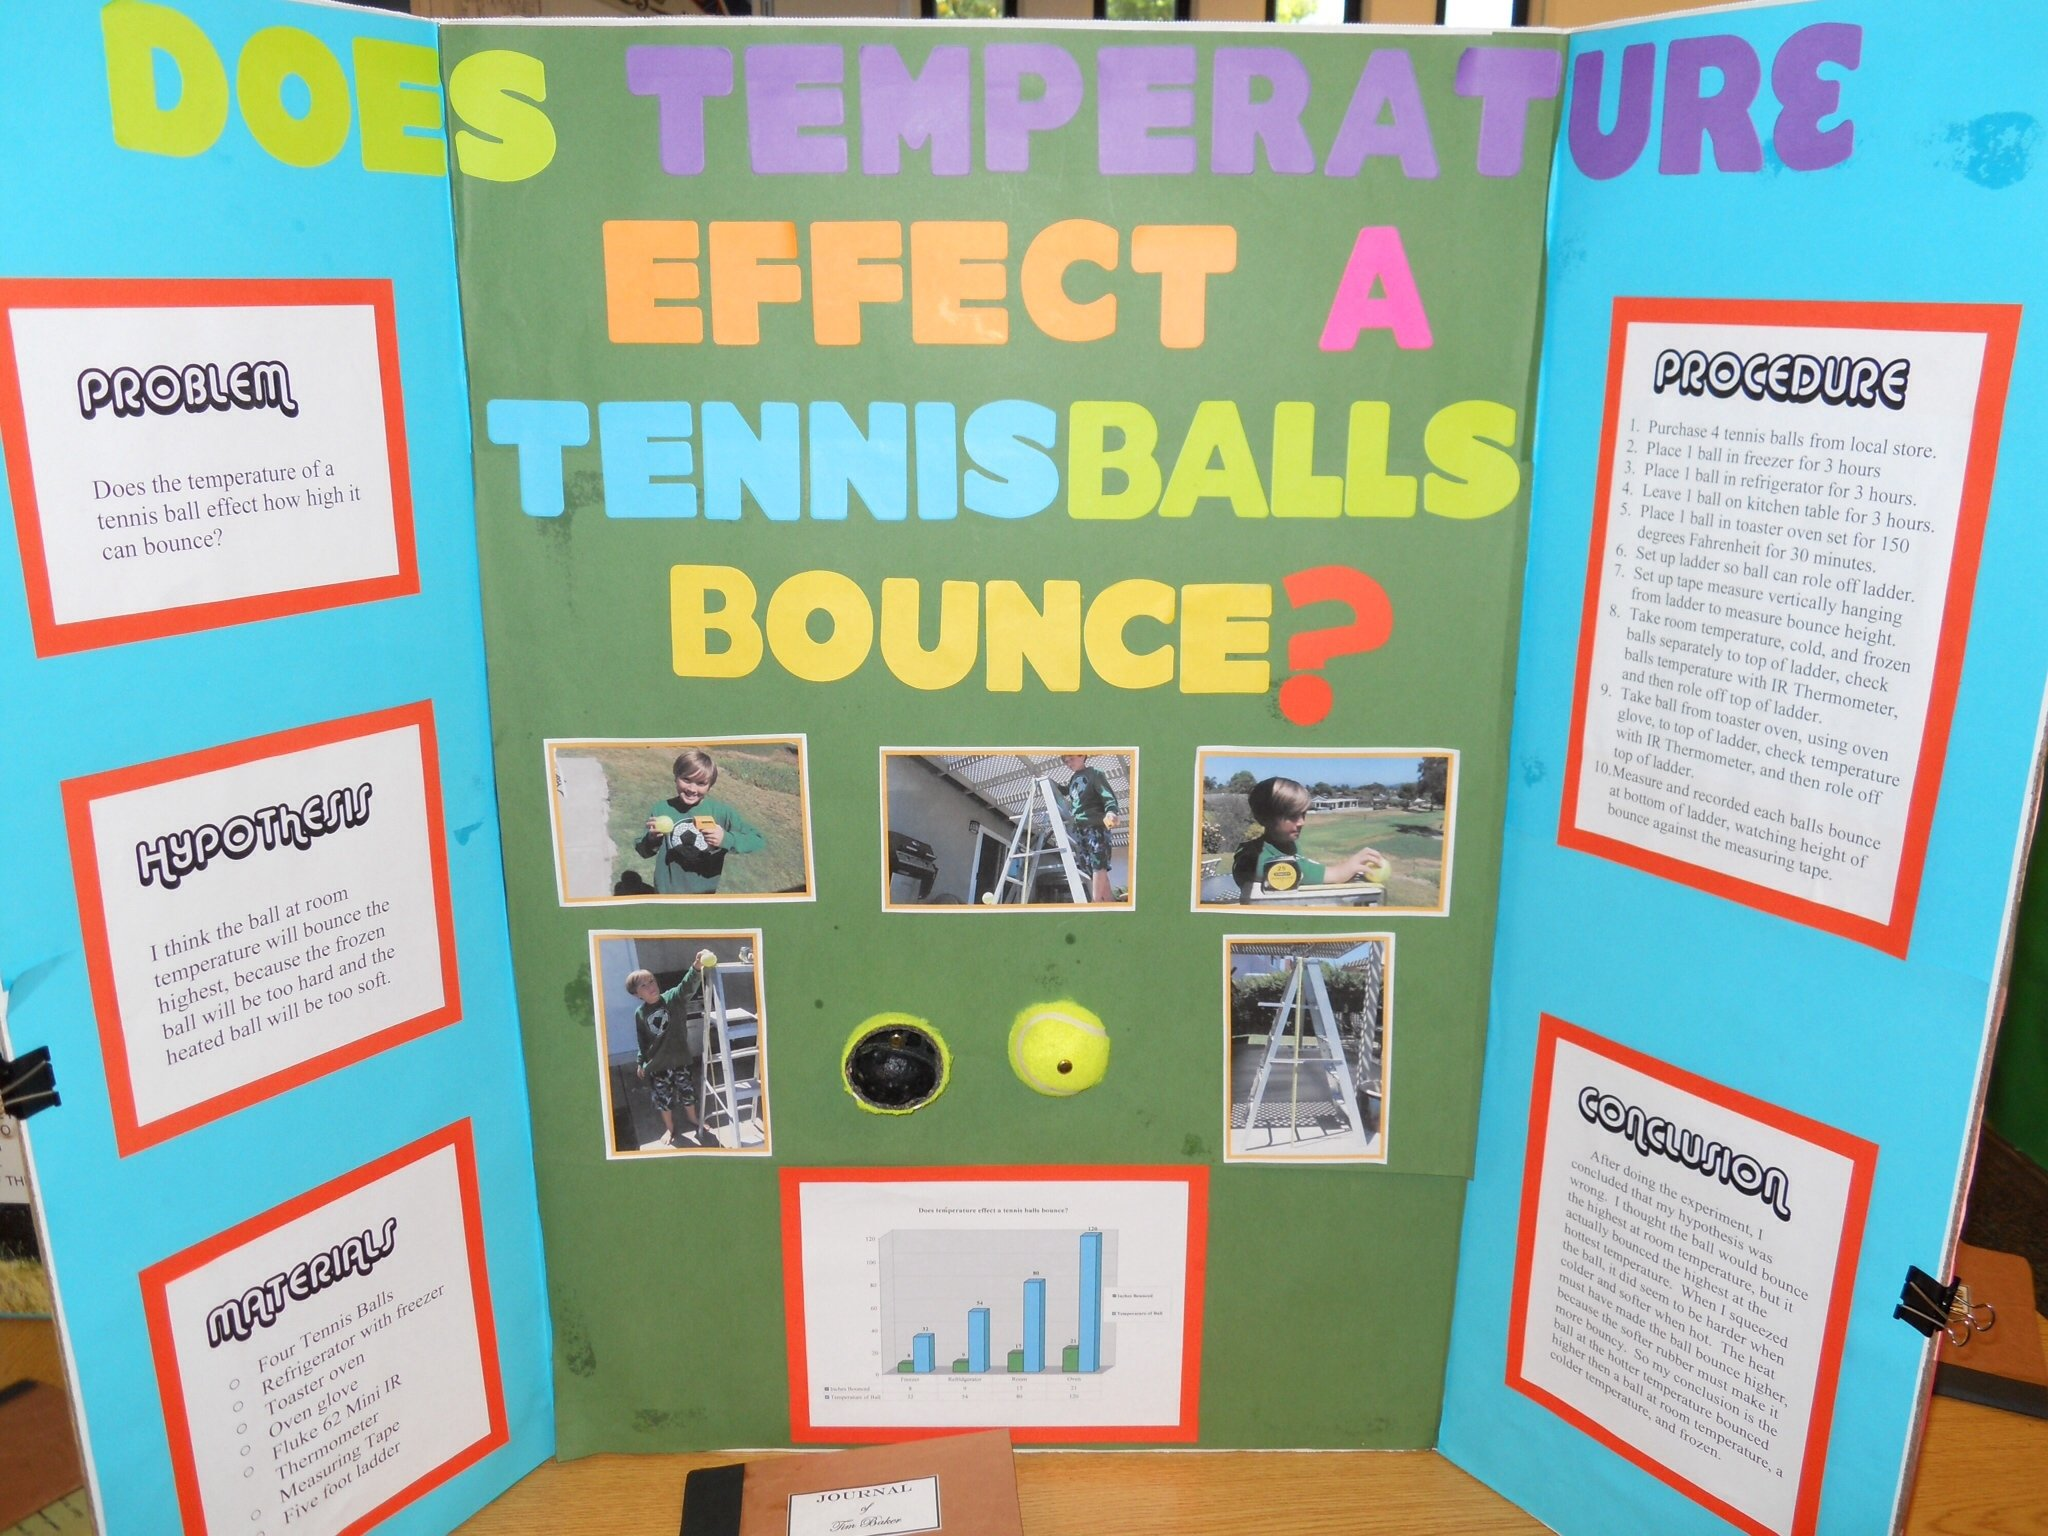 10 Cute Science Project Ideas For Kids cool science fair idea science fair pinterest science fair and 6 2021